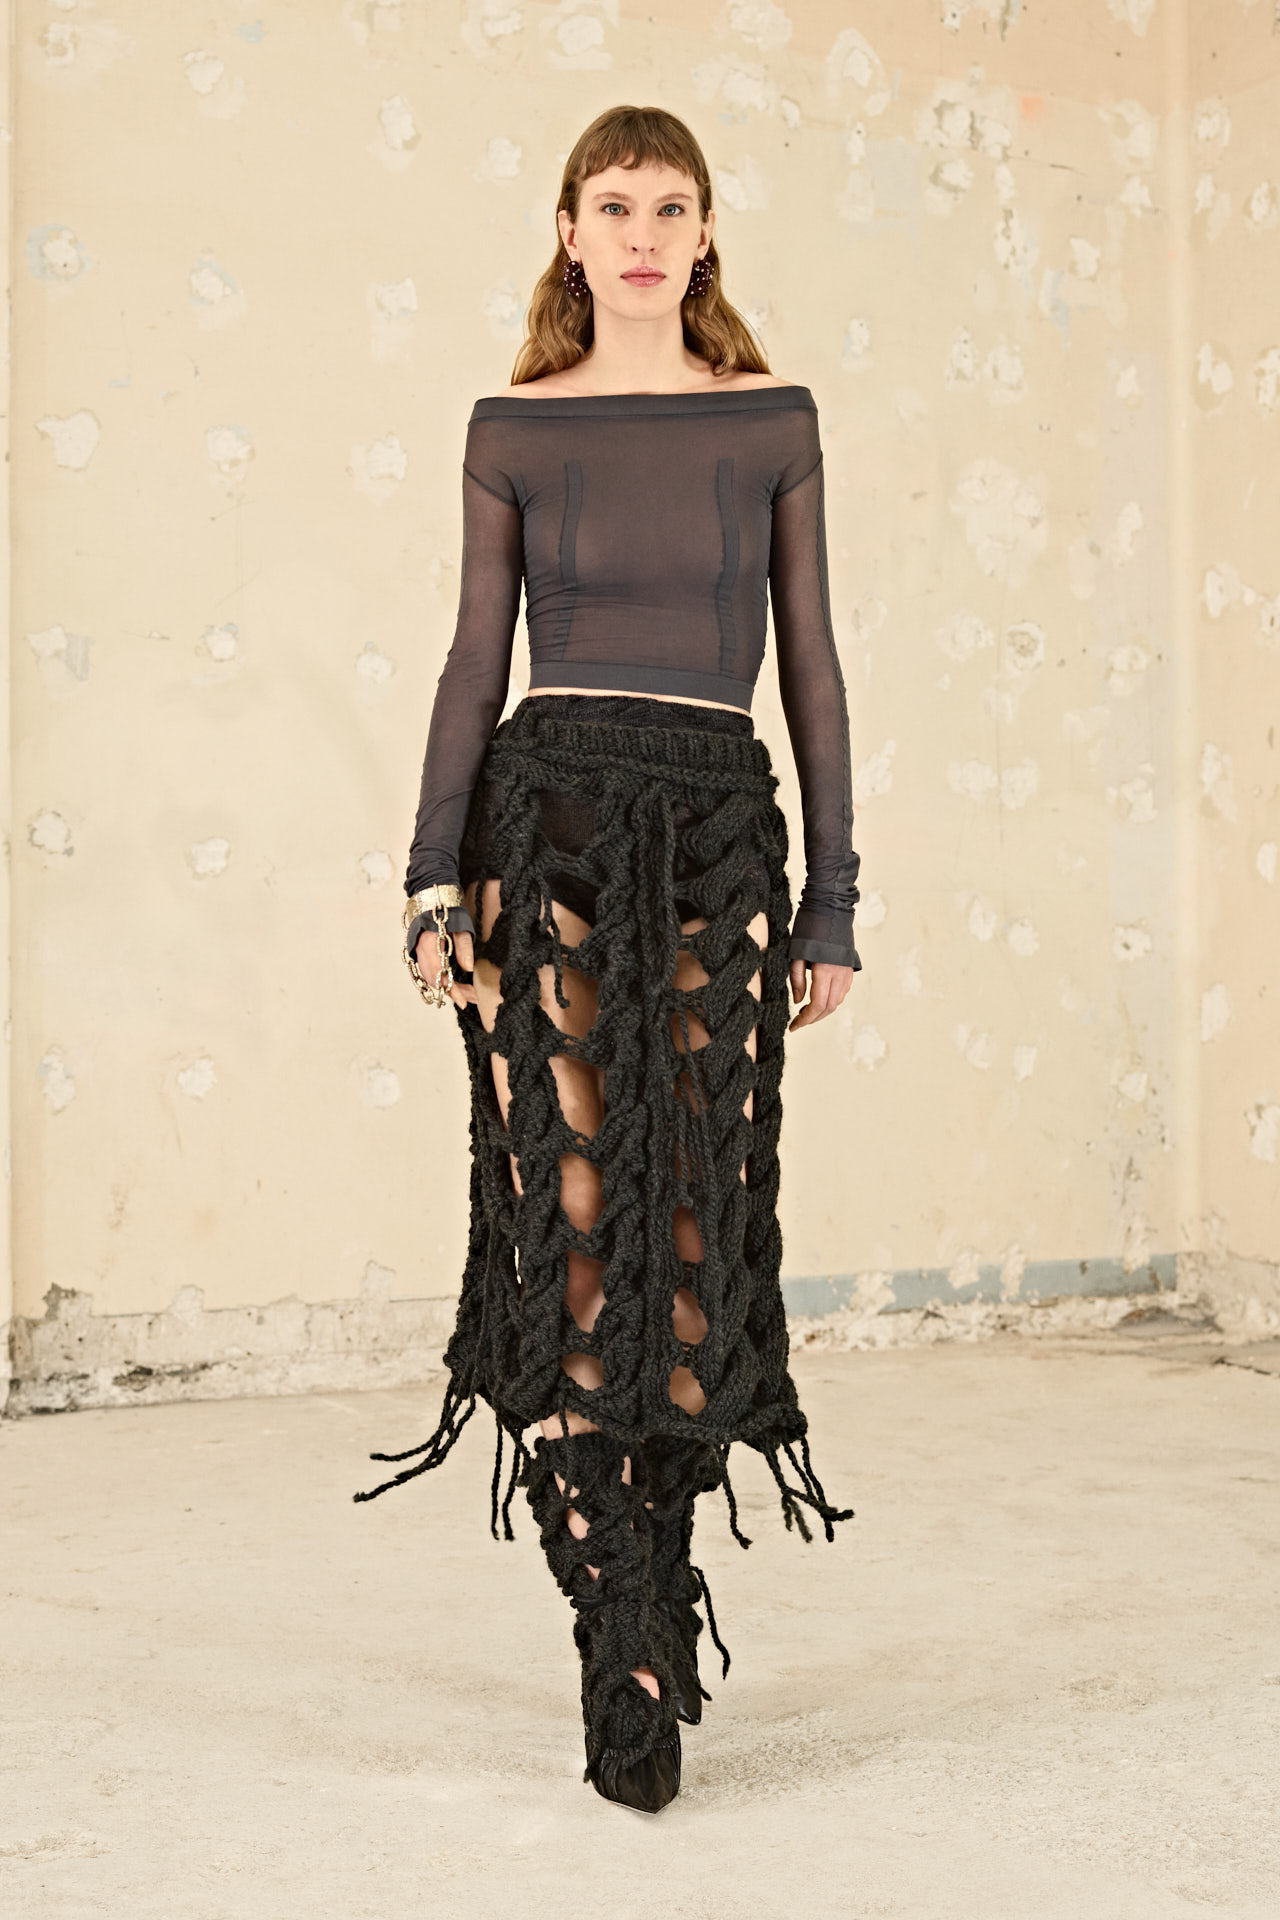 Look Fall/Winter 2021, image 25